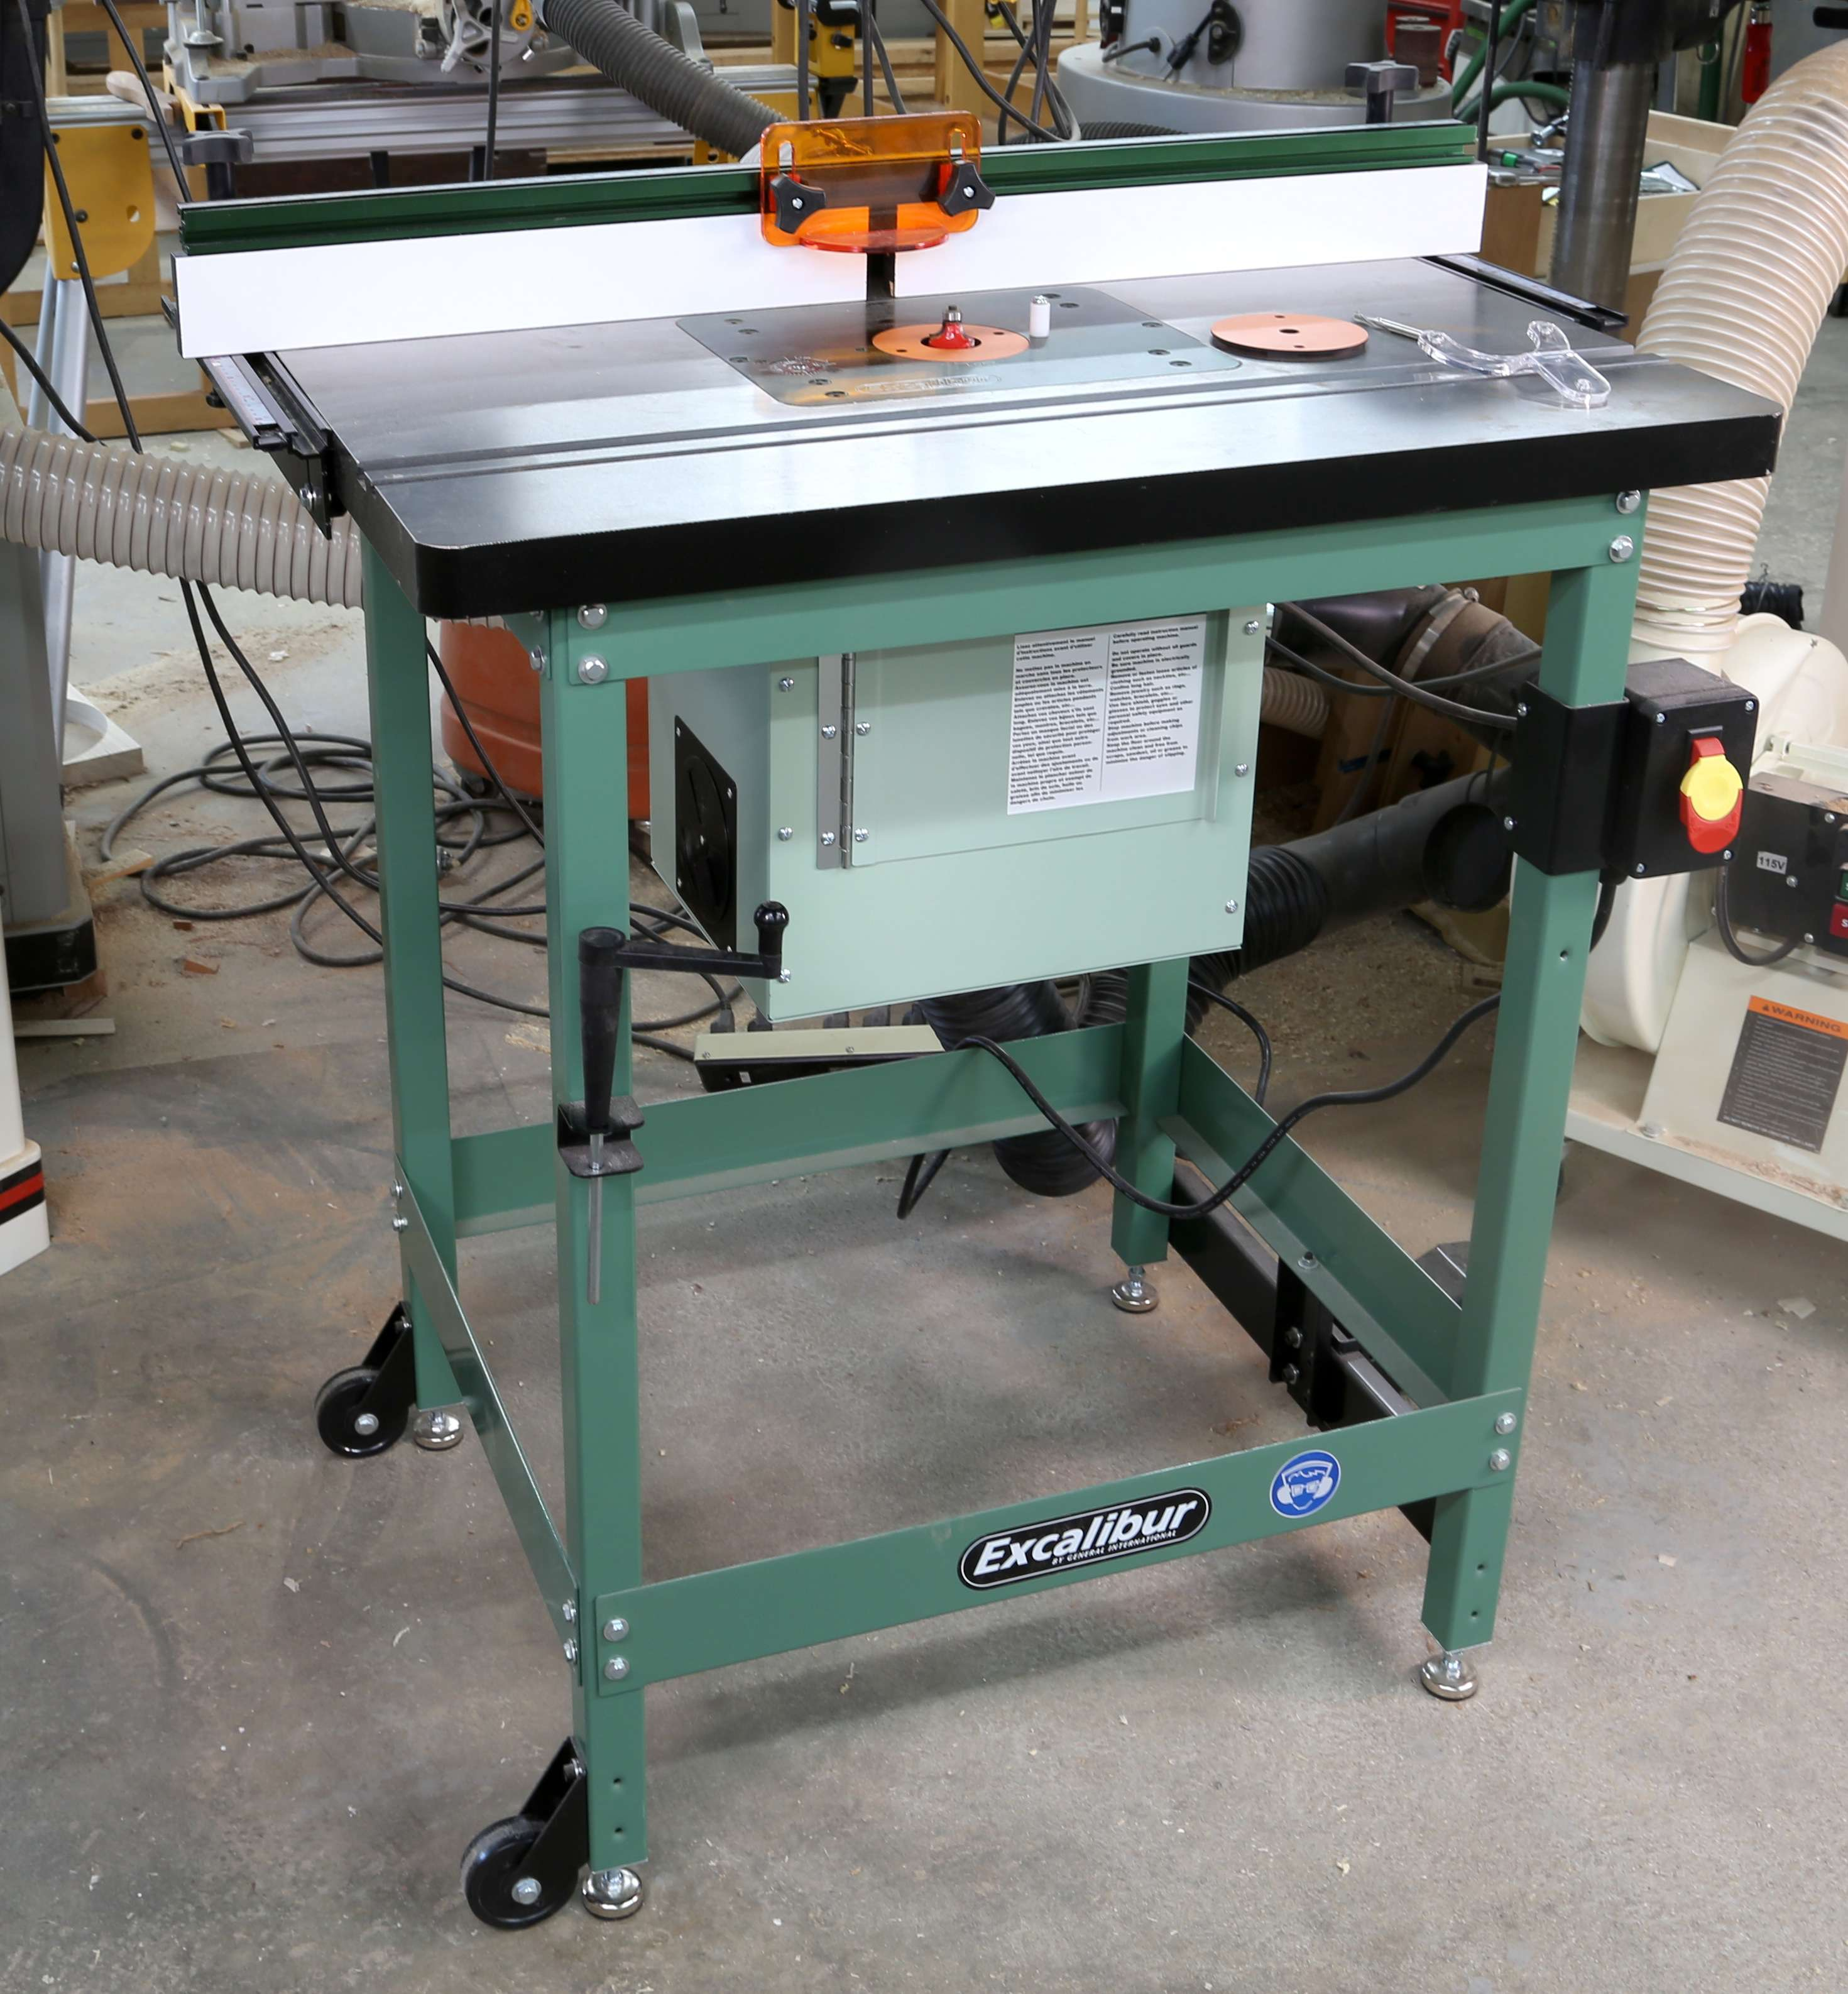 Take A Look At The Excalibur Deluxe Router Table Kit Popular Woodworking Magazine